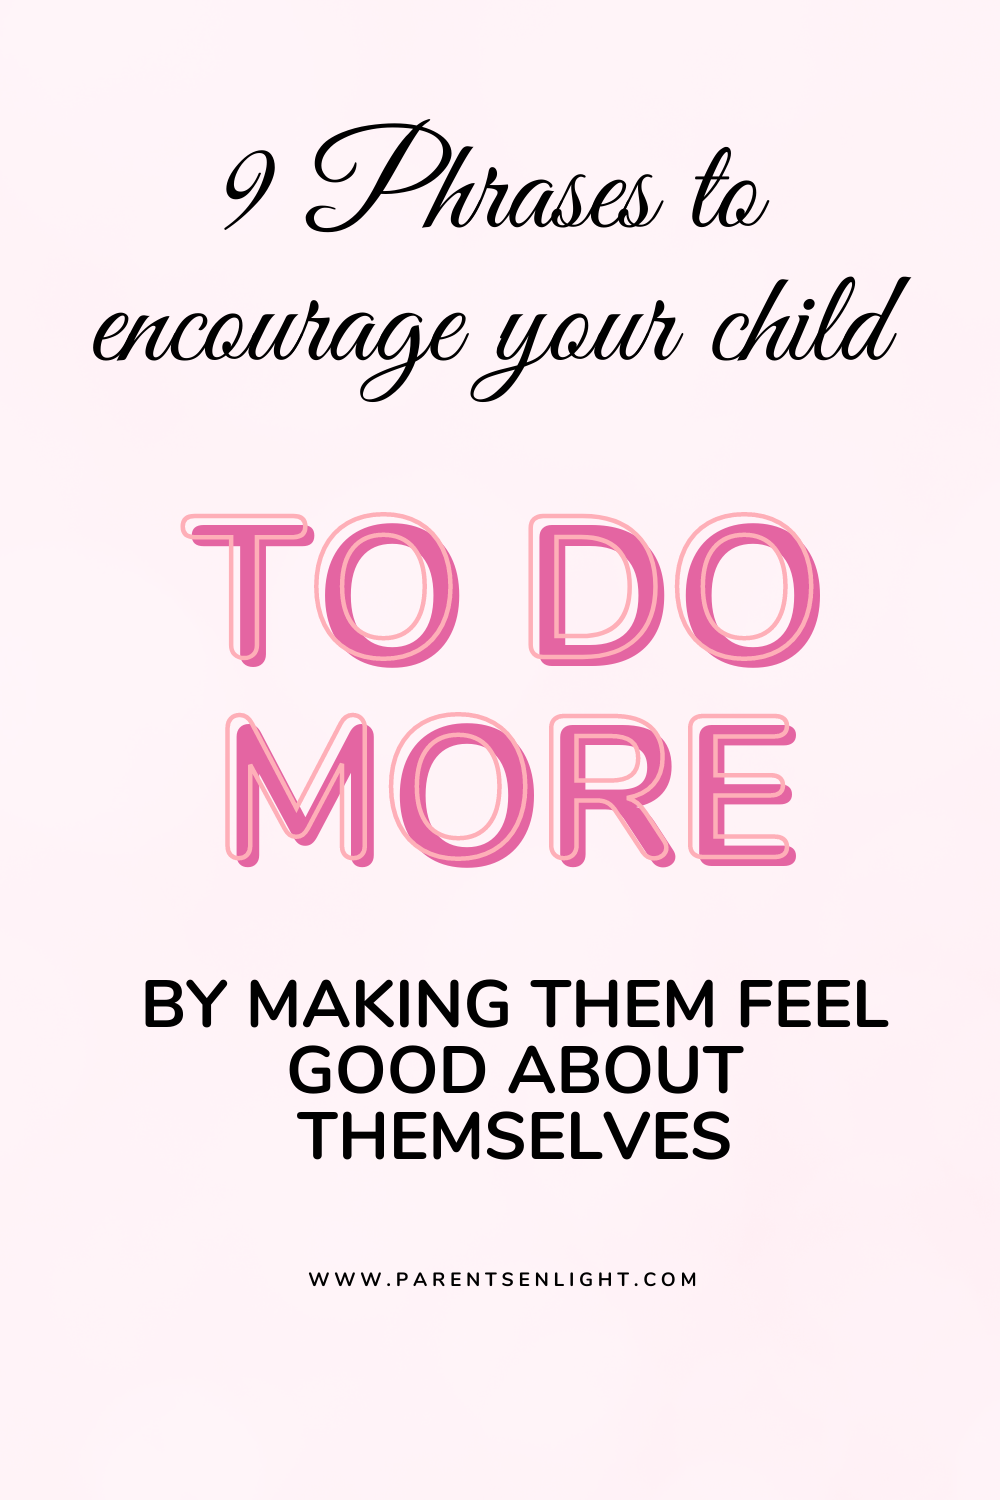 Do you want to encourage your child to do more? To do better? To strive higher? This is how #positiveparenting #motivatingchildren #positiveparentingsolutions #howtogetyourchildtodomore #positiveparentingstrategies